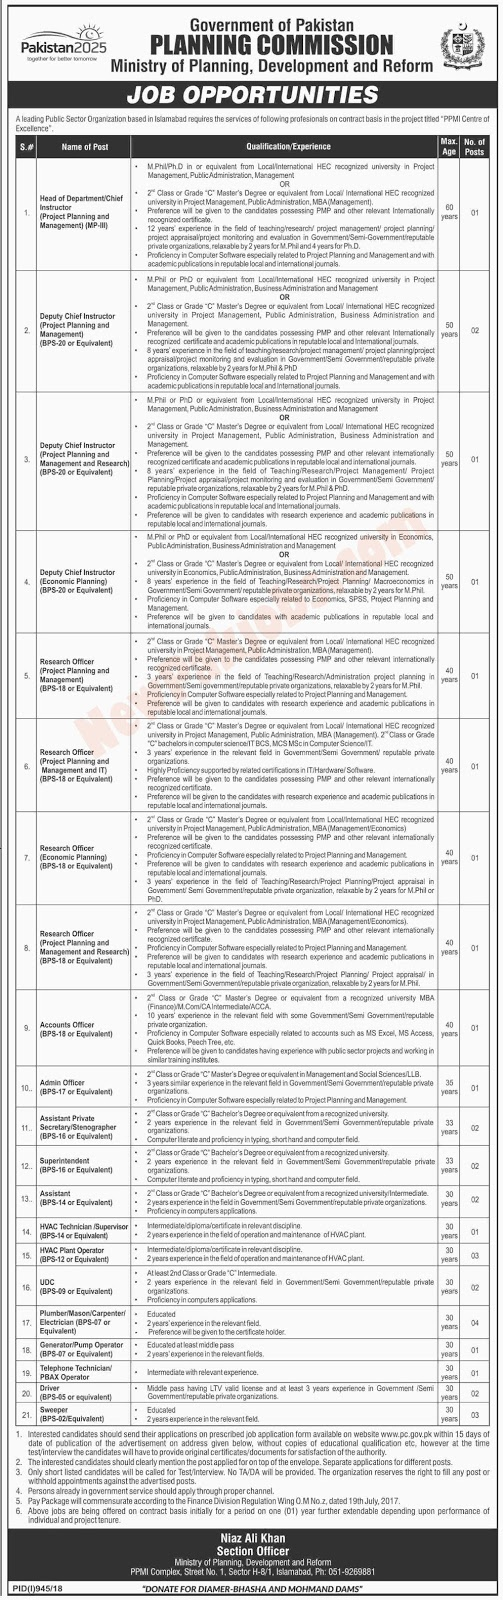 Ministry Of Planning Development & Reform latest Jobs